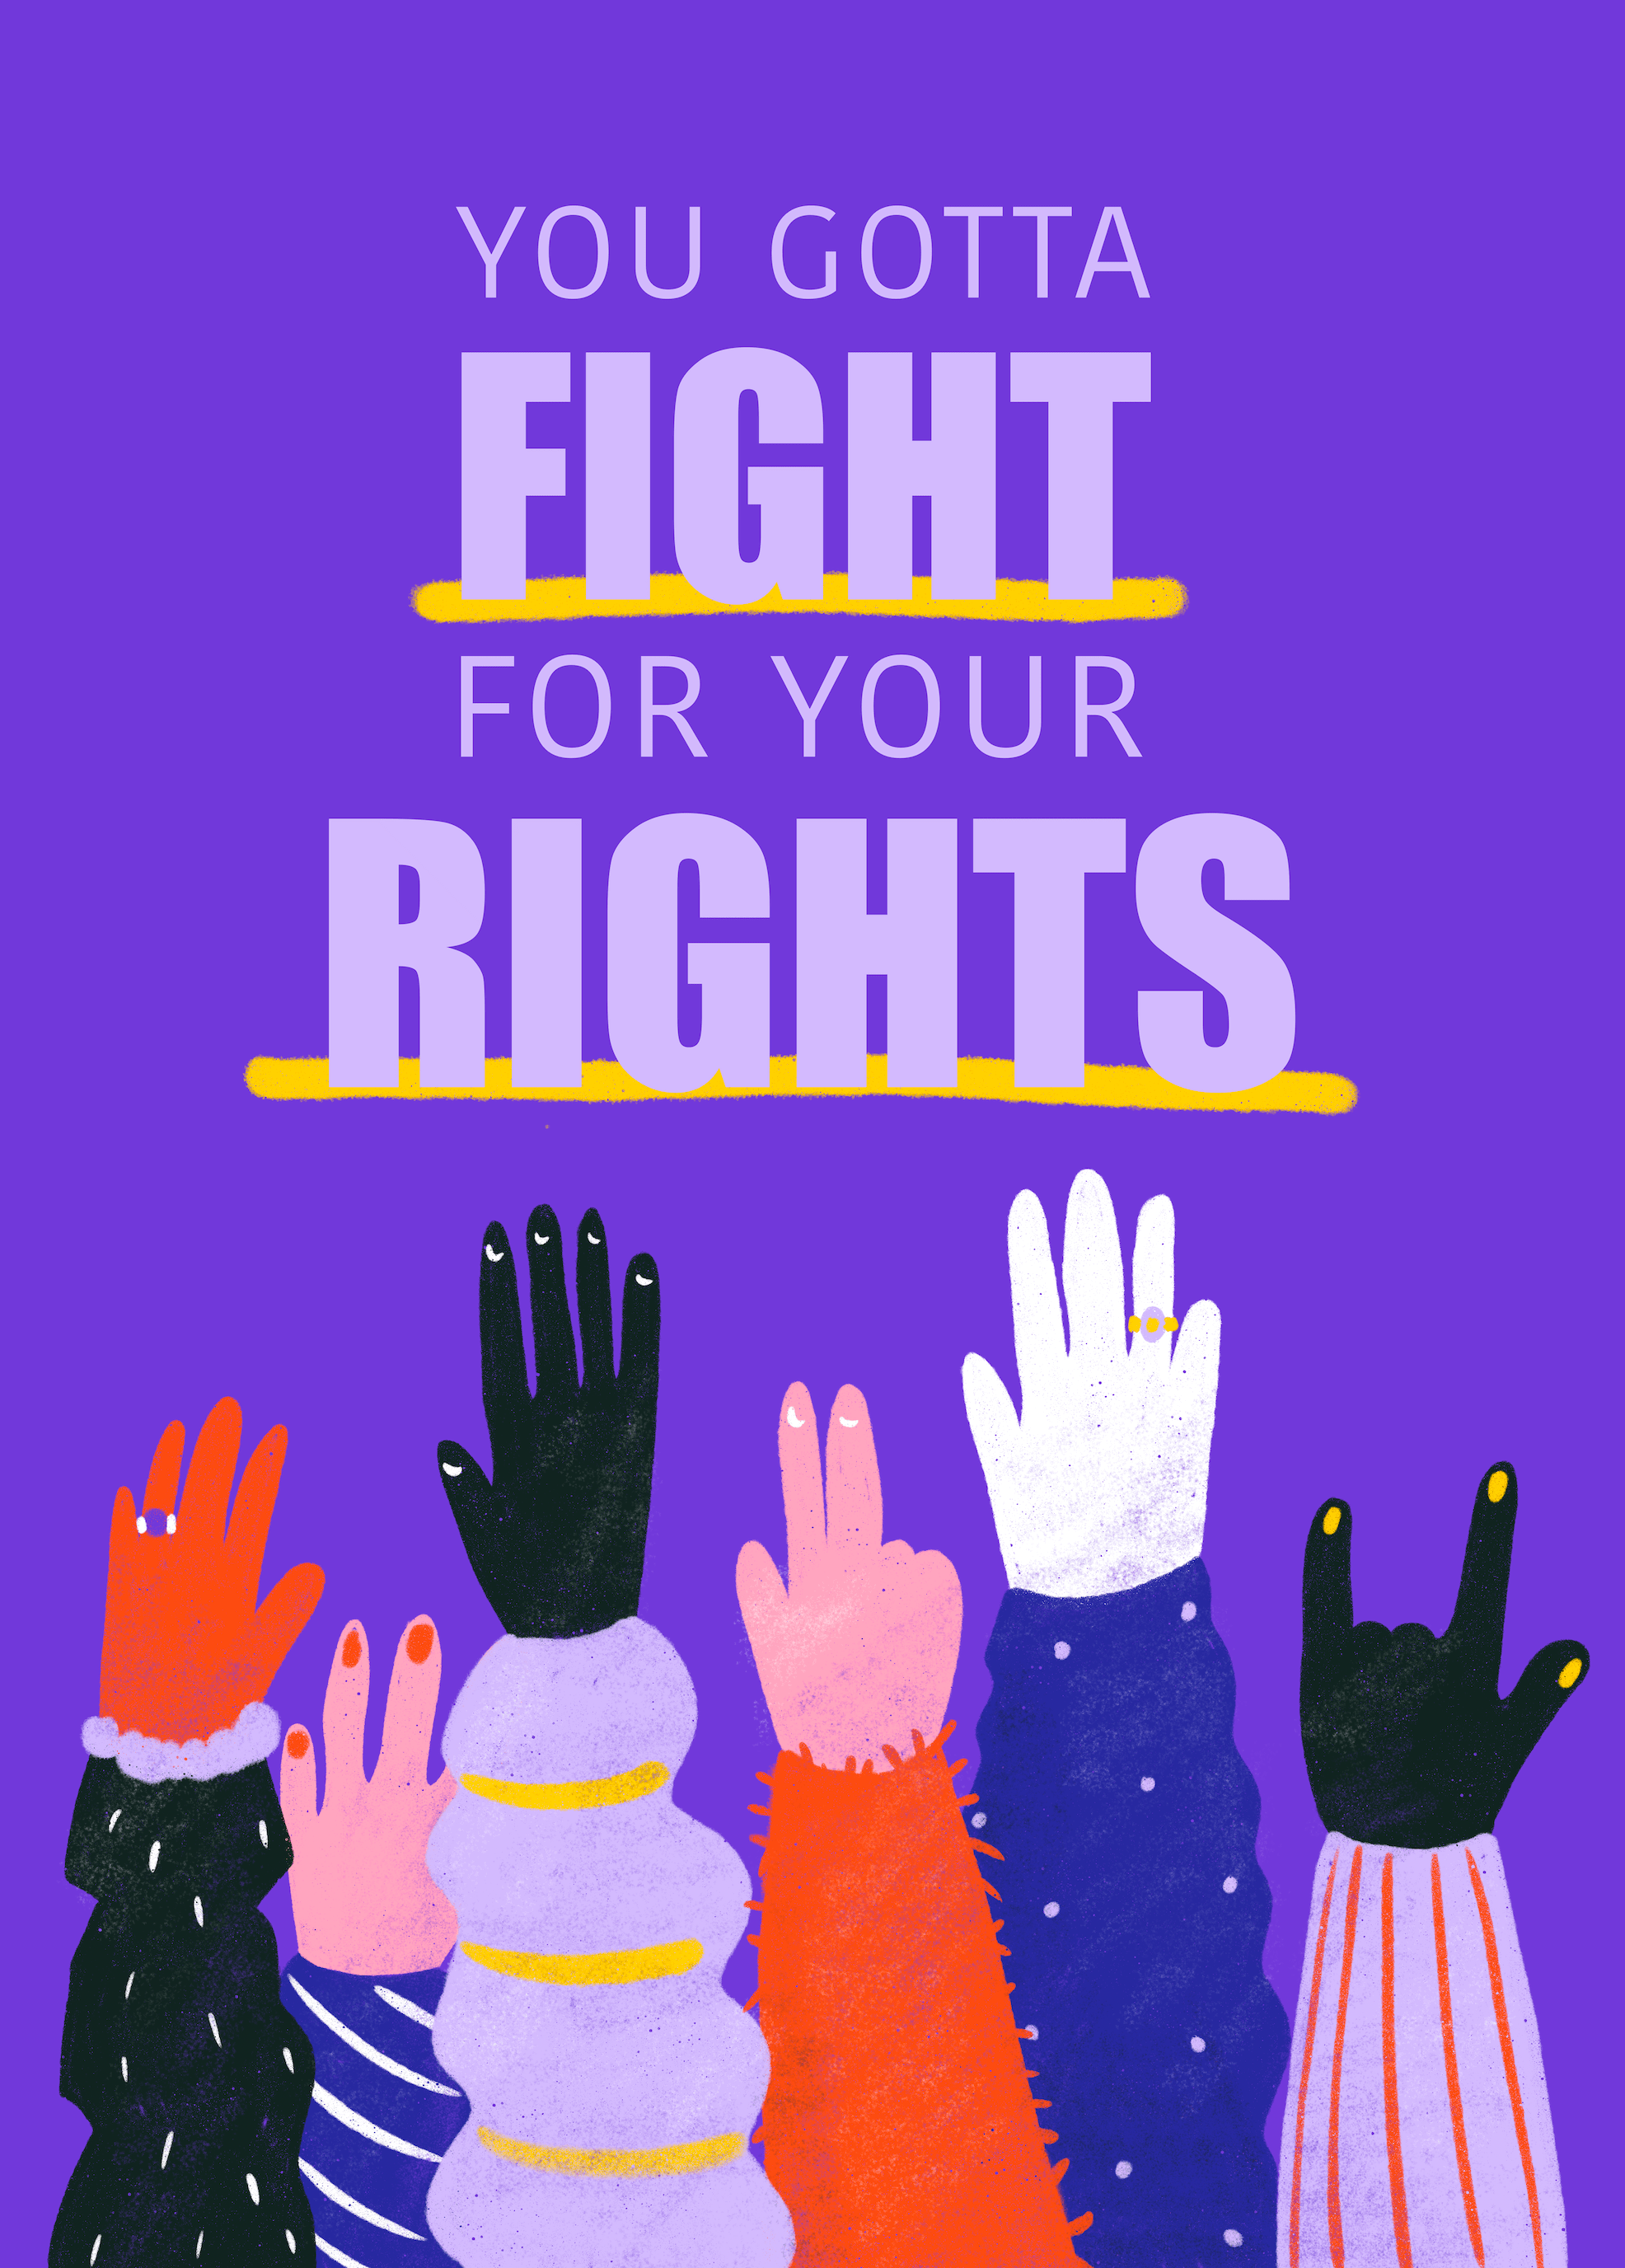 You Gotta Fight For Your Rights main image